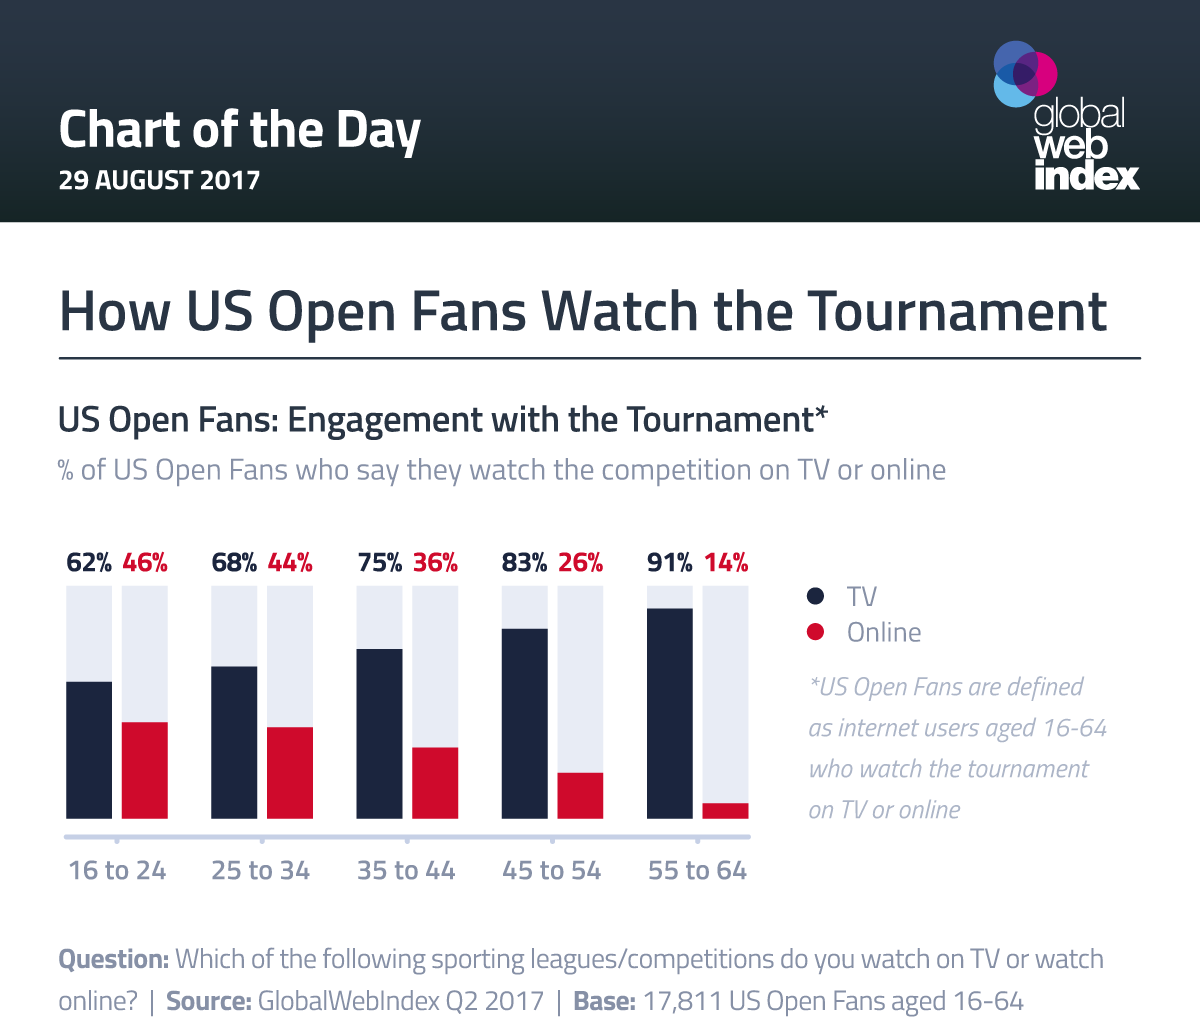 How US Open Fans Watch the Tournament